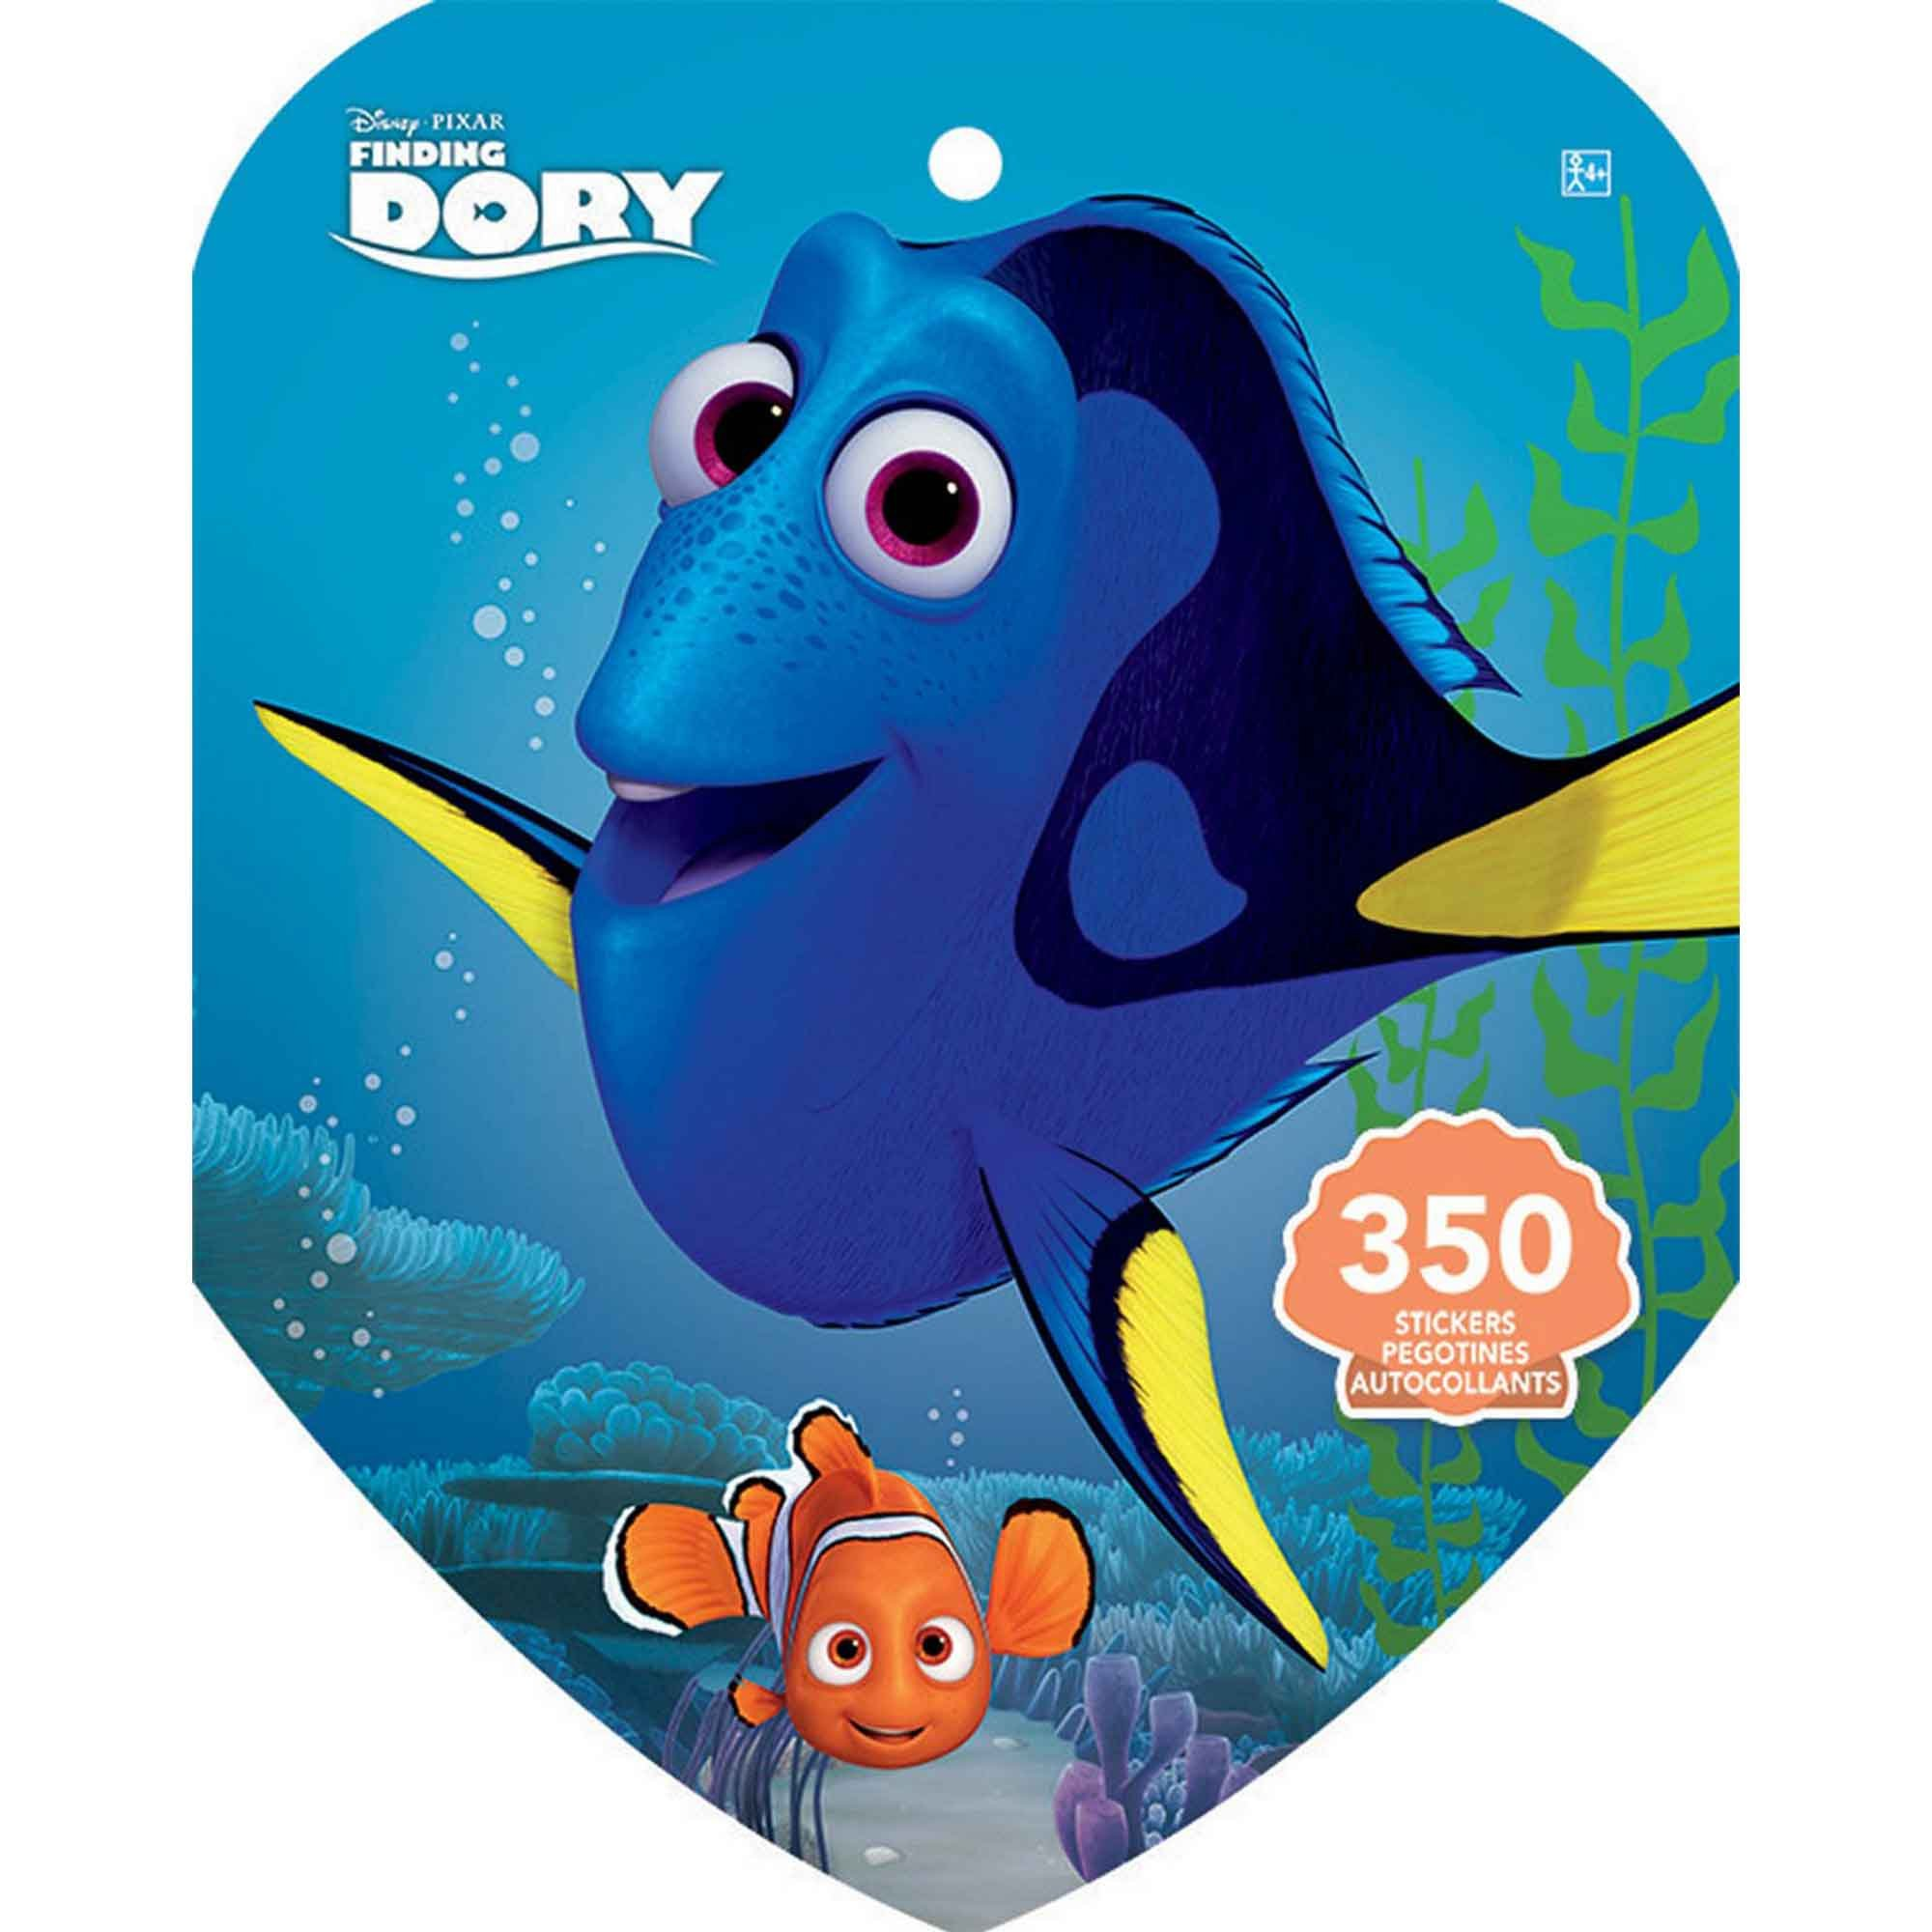 Sticker Book Finding Dory